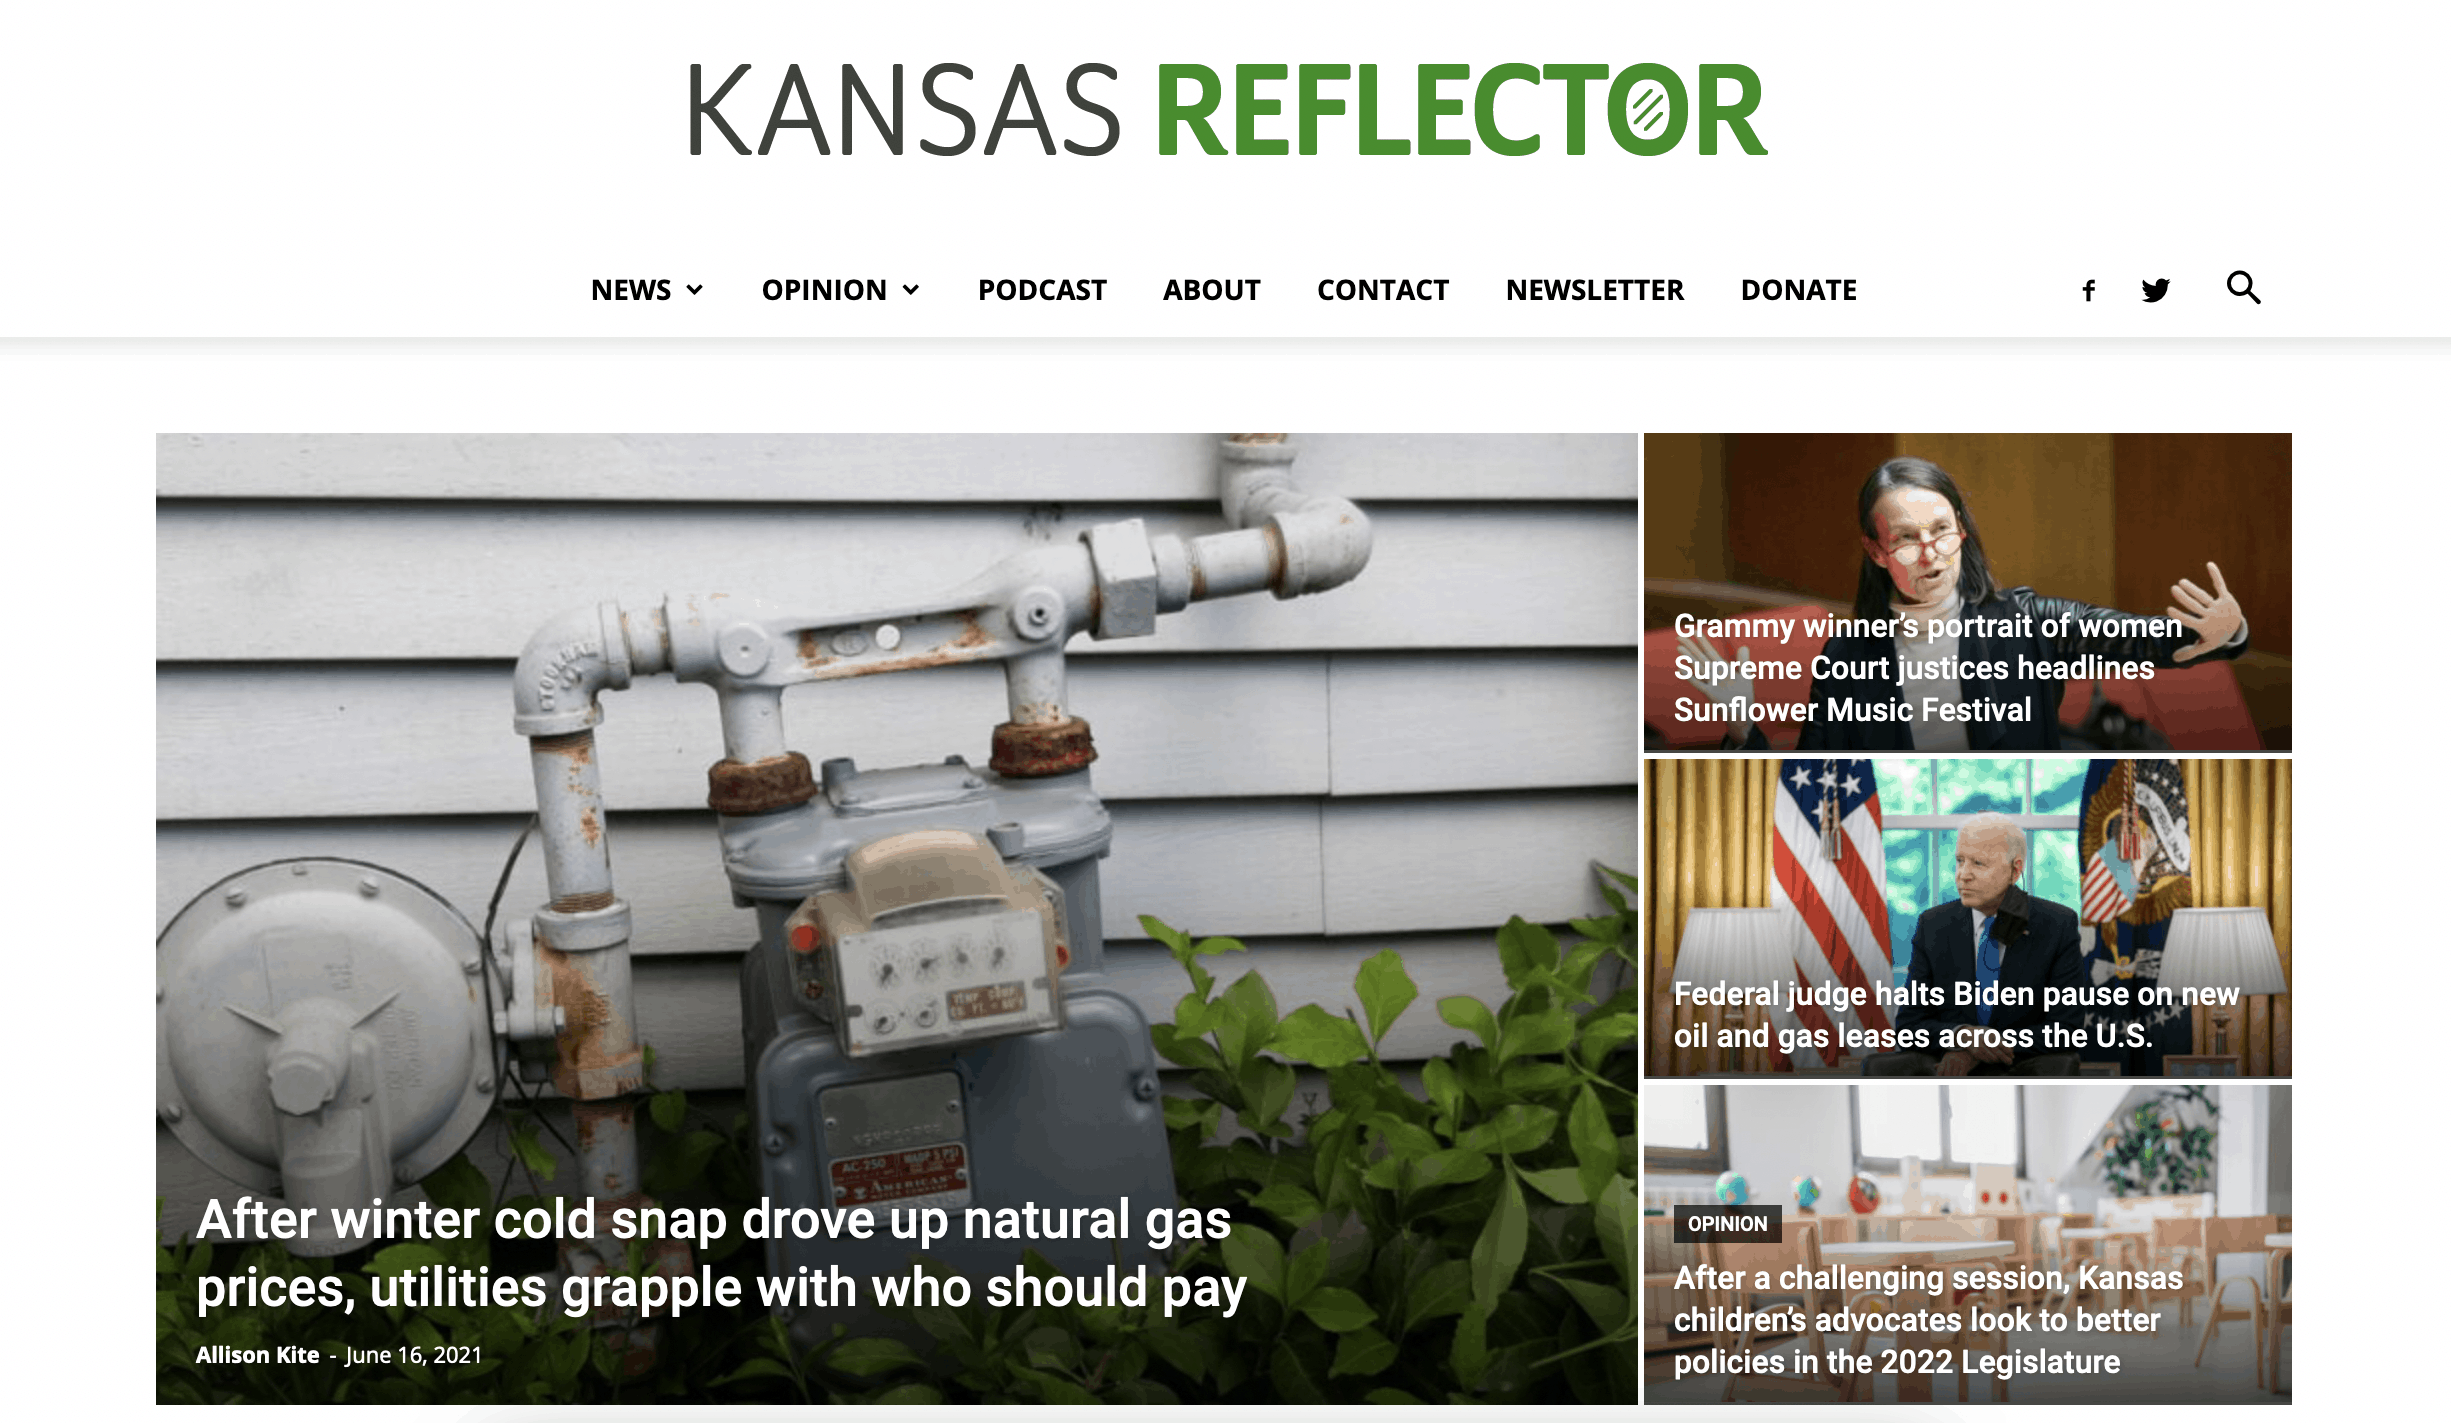 The homepage of the Kansas Reflector, with several stories displayed